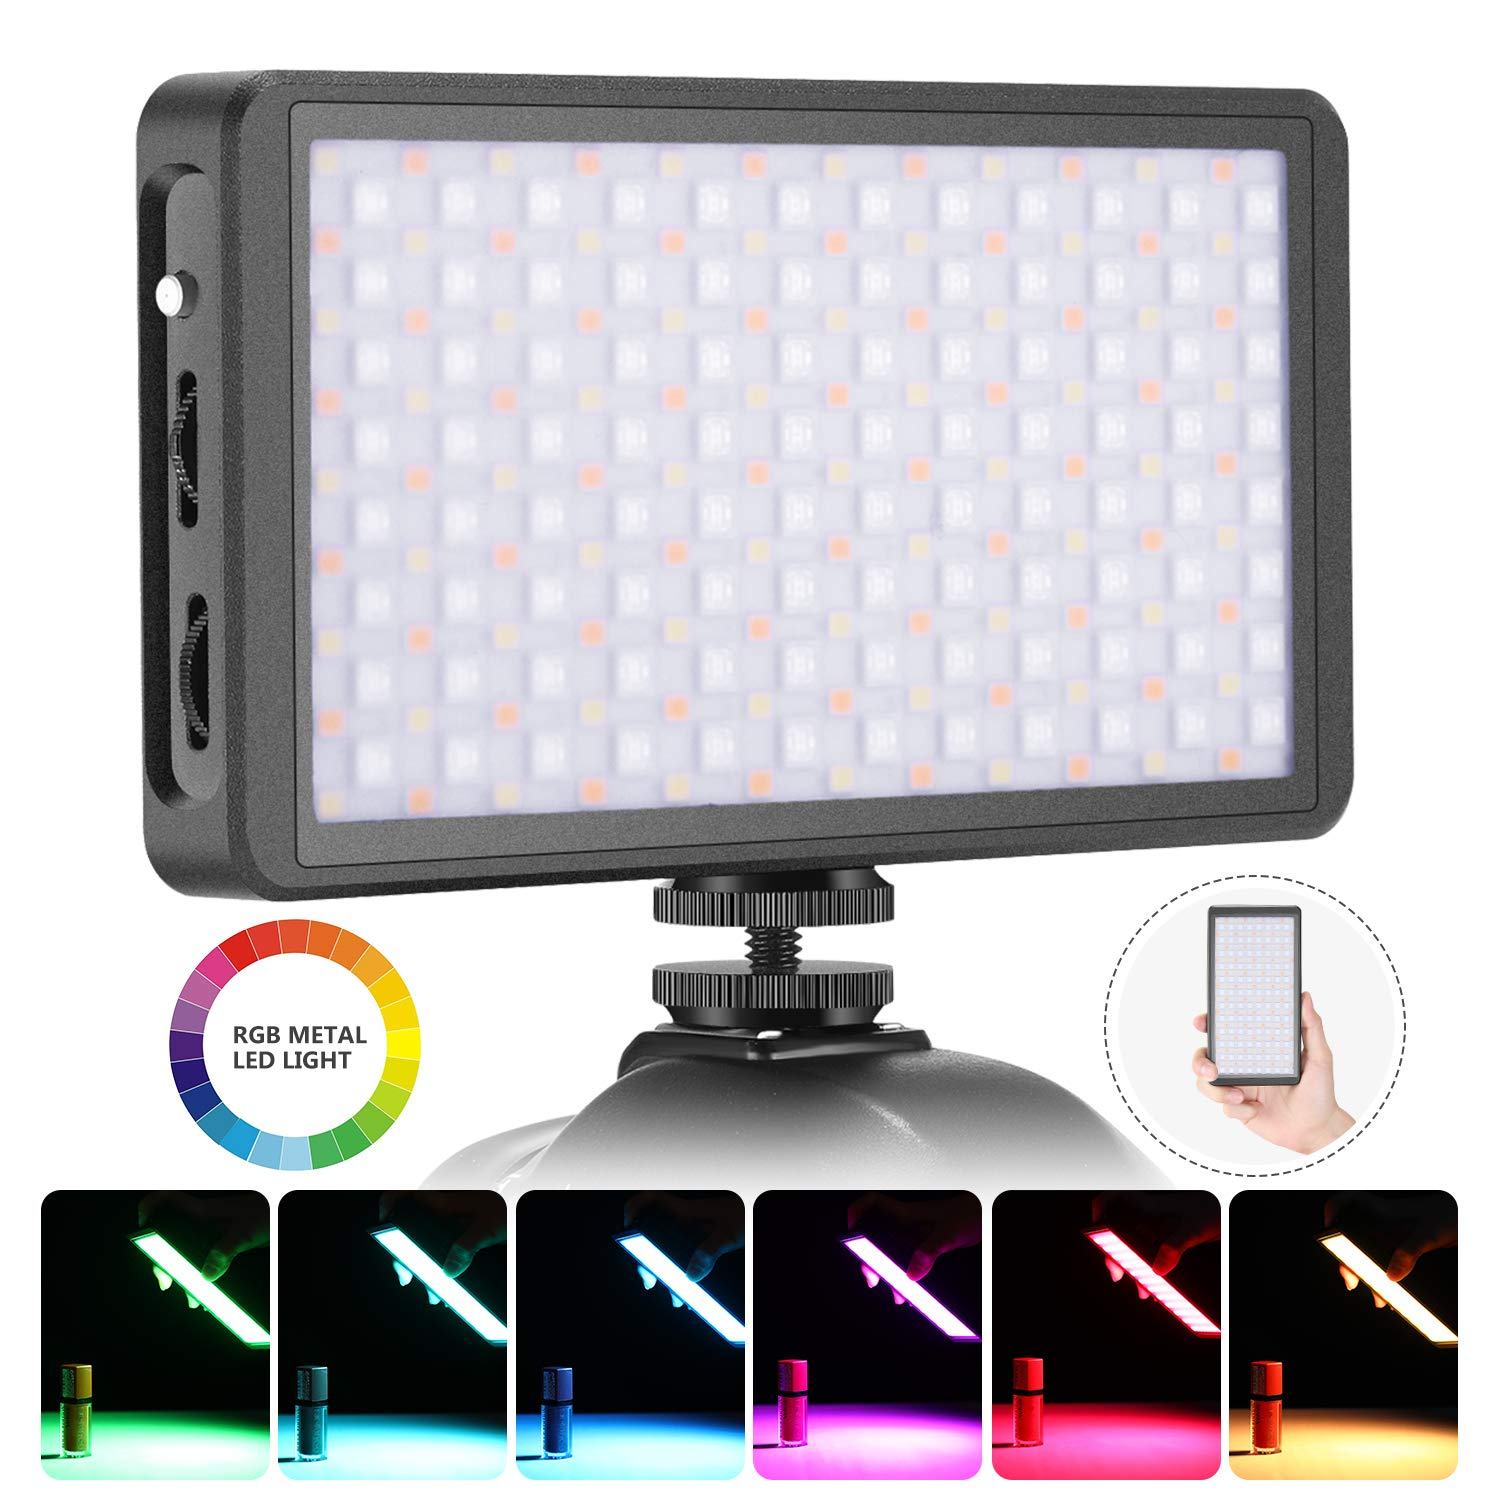 Neewer F7 RGB LED Light for Camera Camcorder, Full Color Rechargeable Pocket Size LED Video Light CRI97/2500K-9000K/0-360 Adjustable Colors/20 Applicable Situation/Aluminum Alloy Shell with Magnet by Neewer